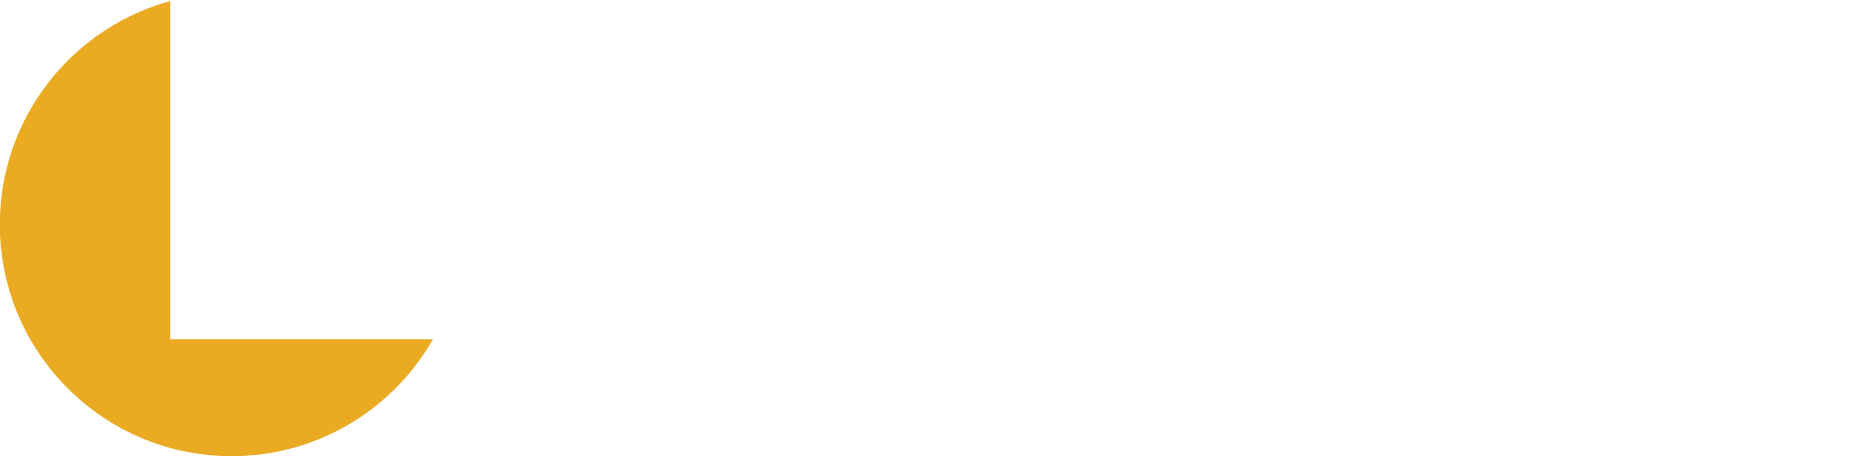 Lucca Trailers